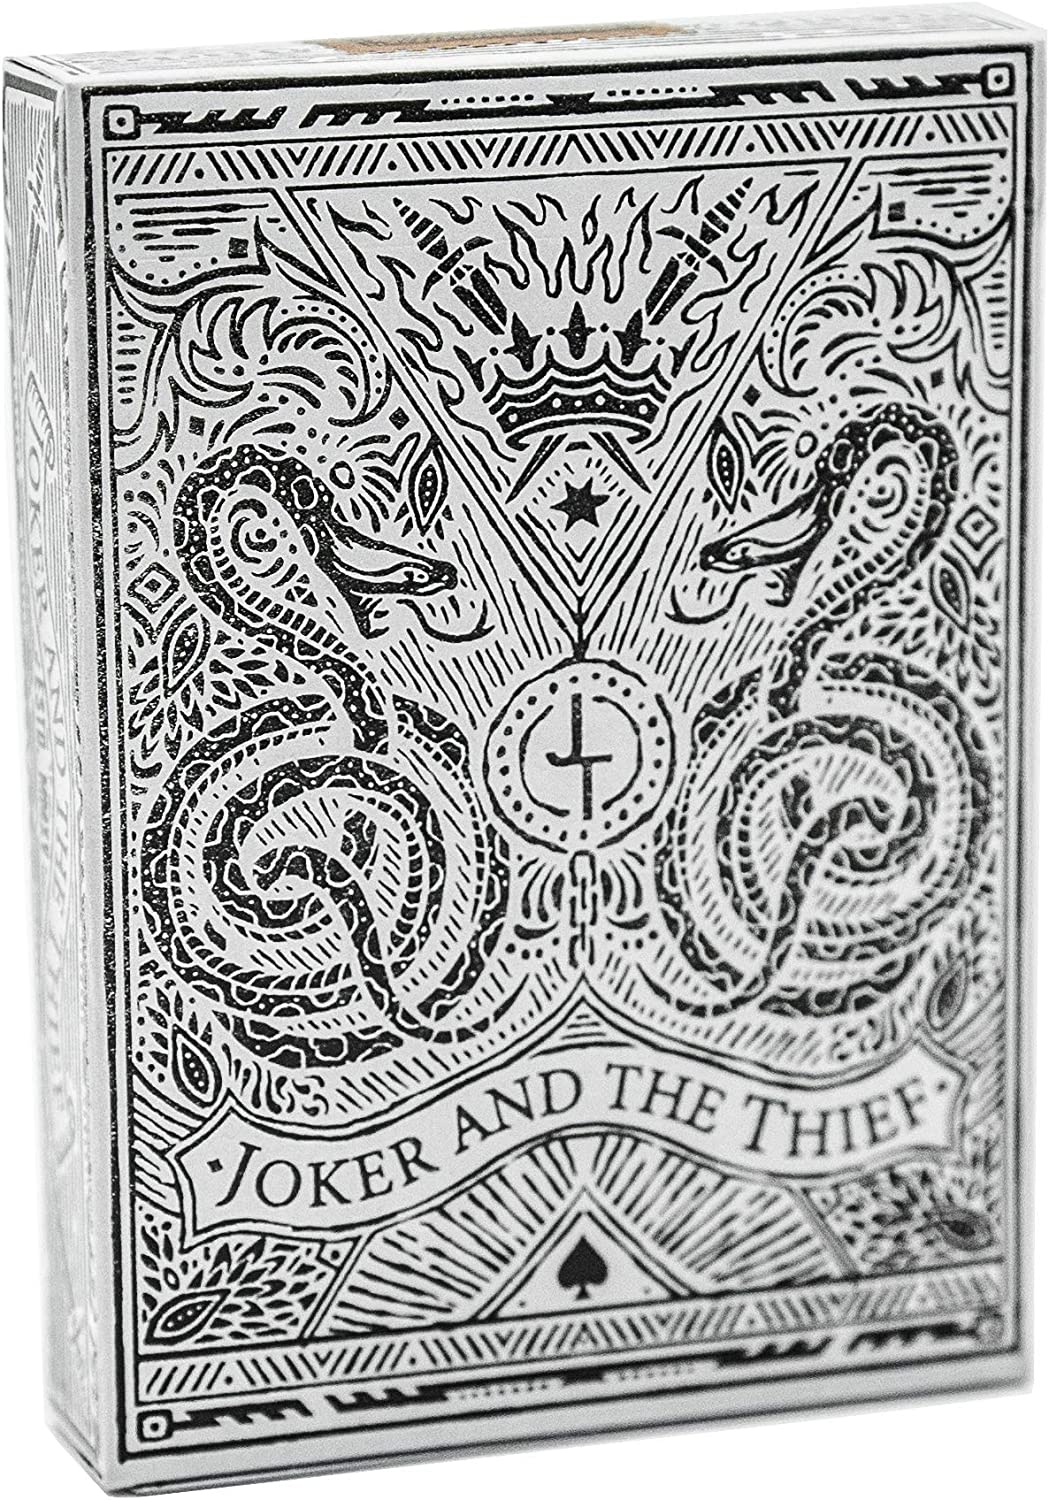 Playing Cards - Joker and the Thief: Street Edition